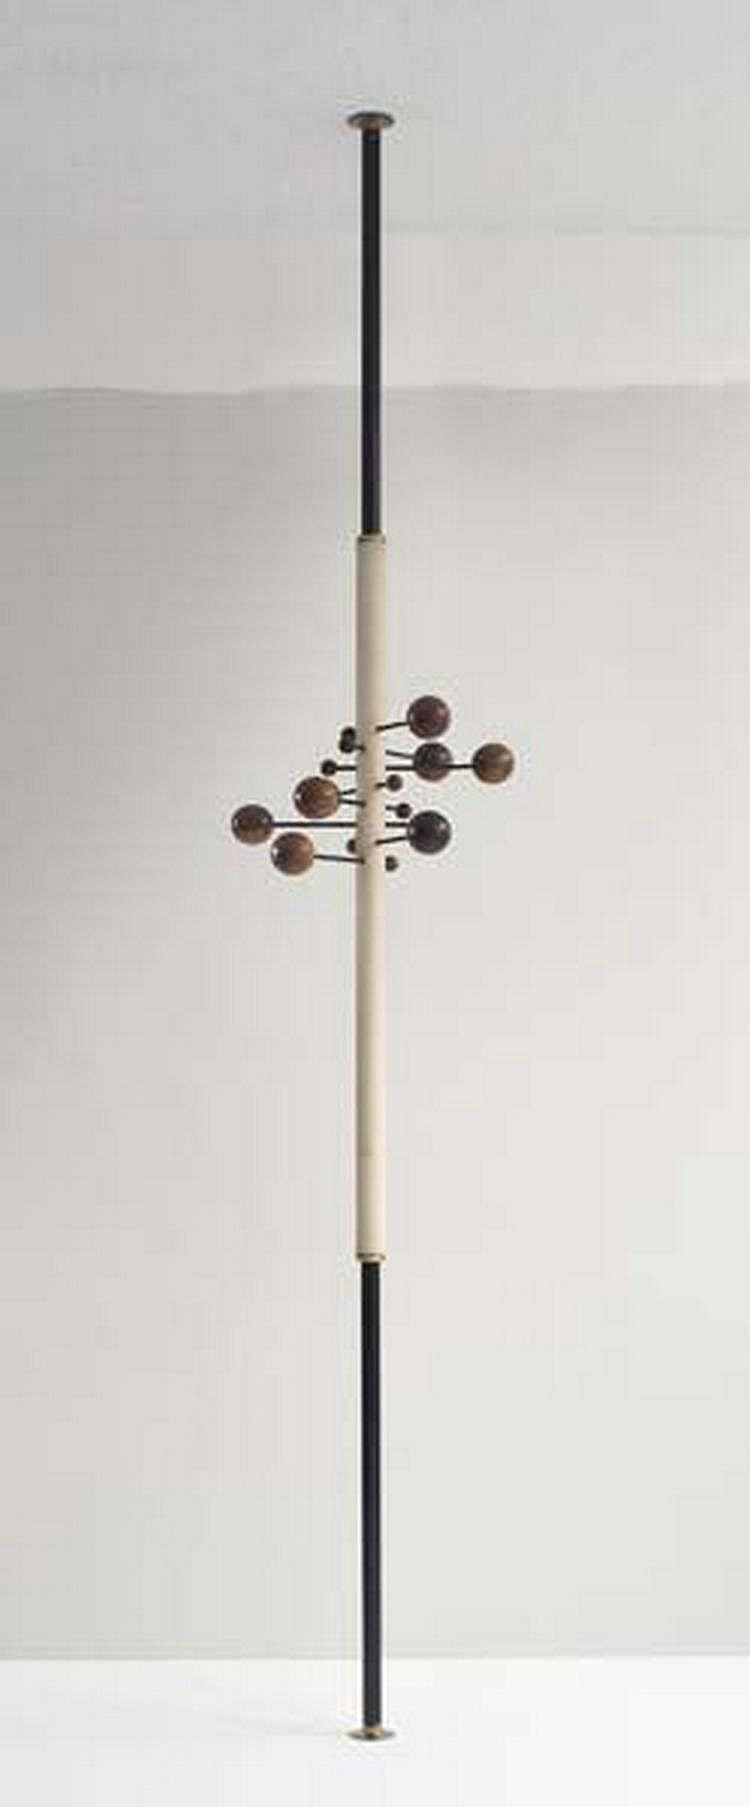 OSVALDO BORSANI Coat rack, model no. AT16, 1961